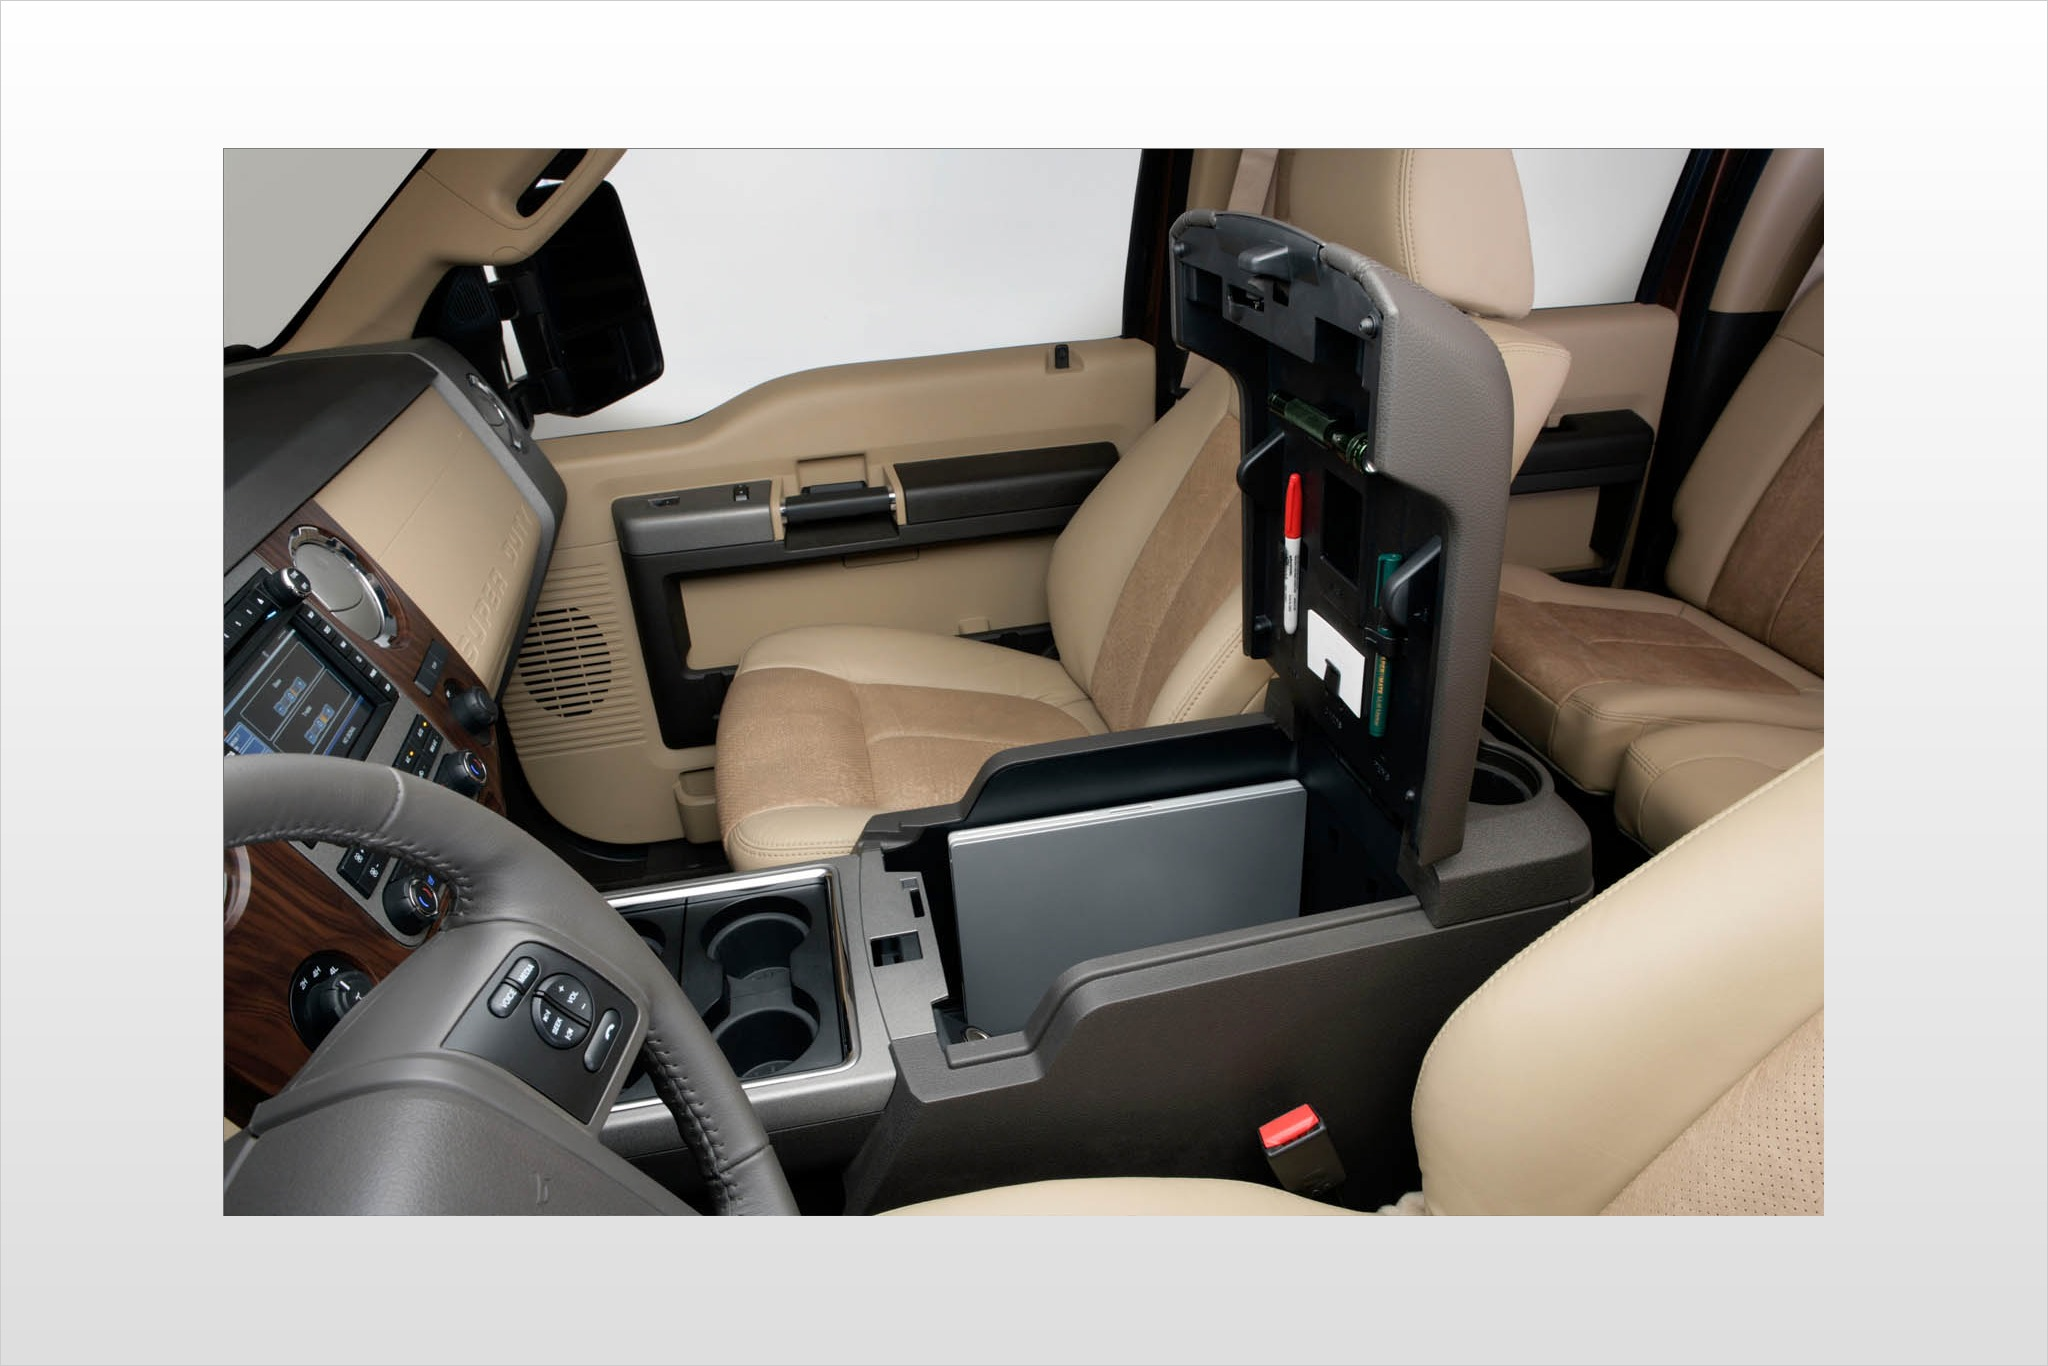 2012 Ford F-450 Super Dut interior #5